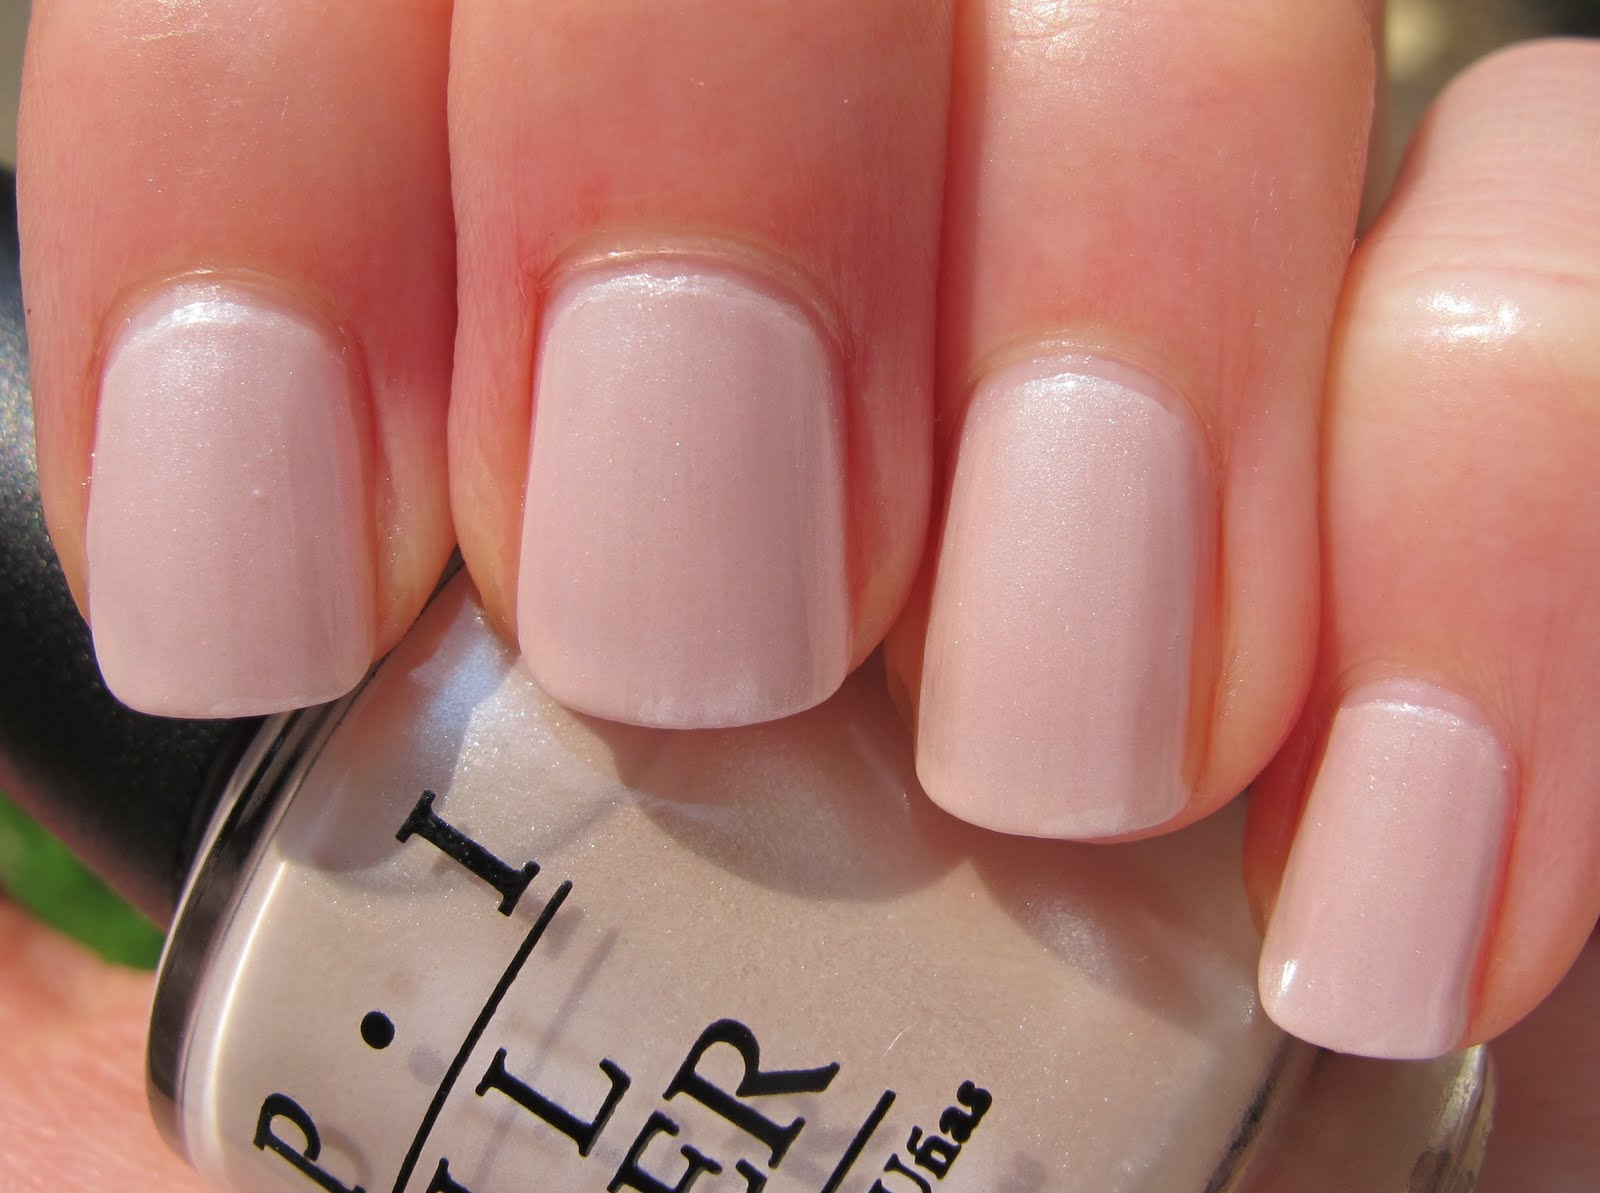 Never Enough Nails: Come Tiptoe Through My OPI Nice Stems! Swatches!